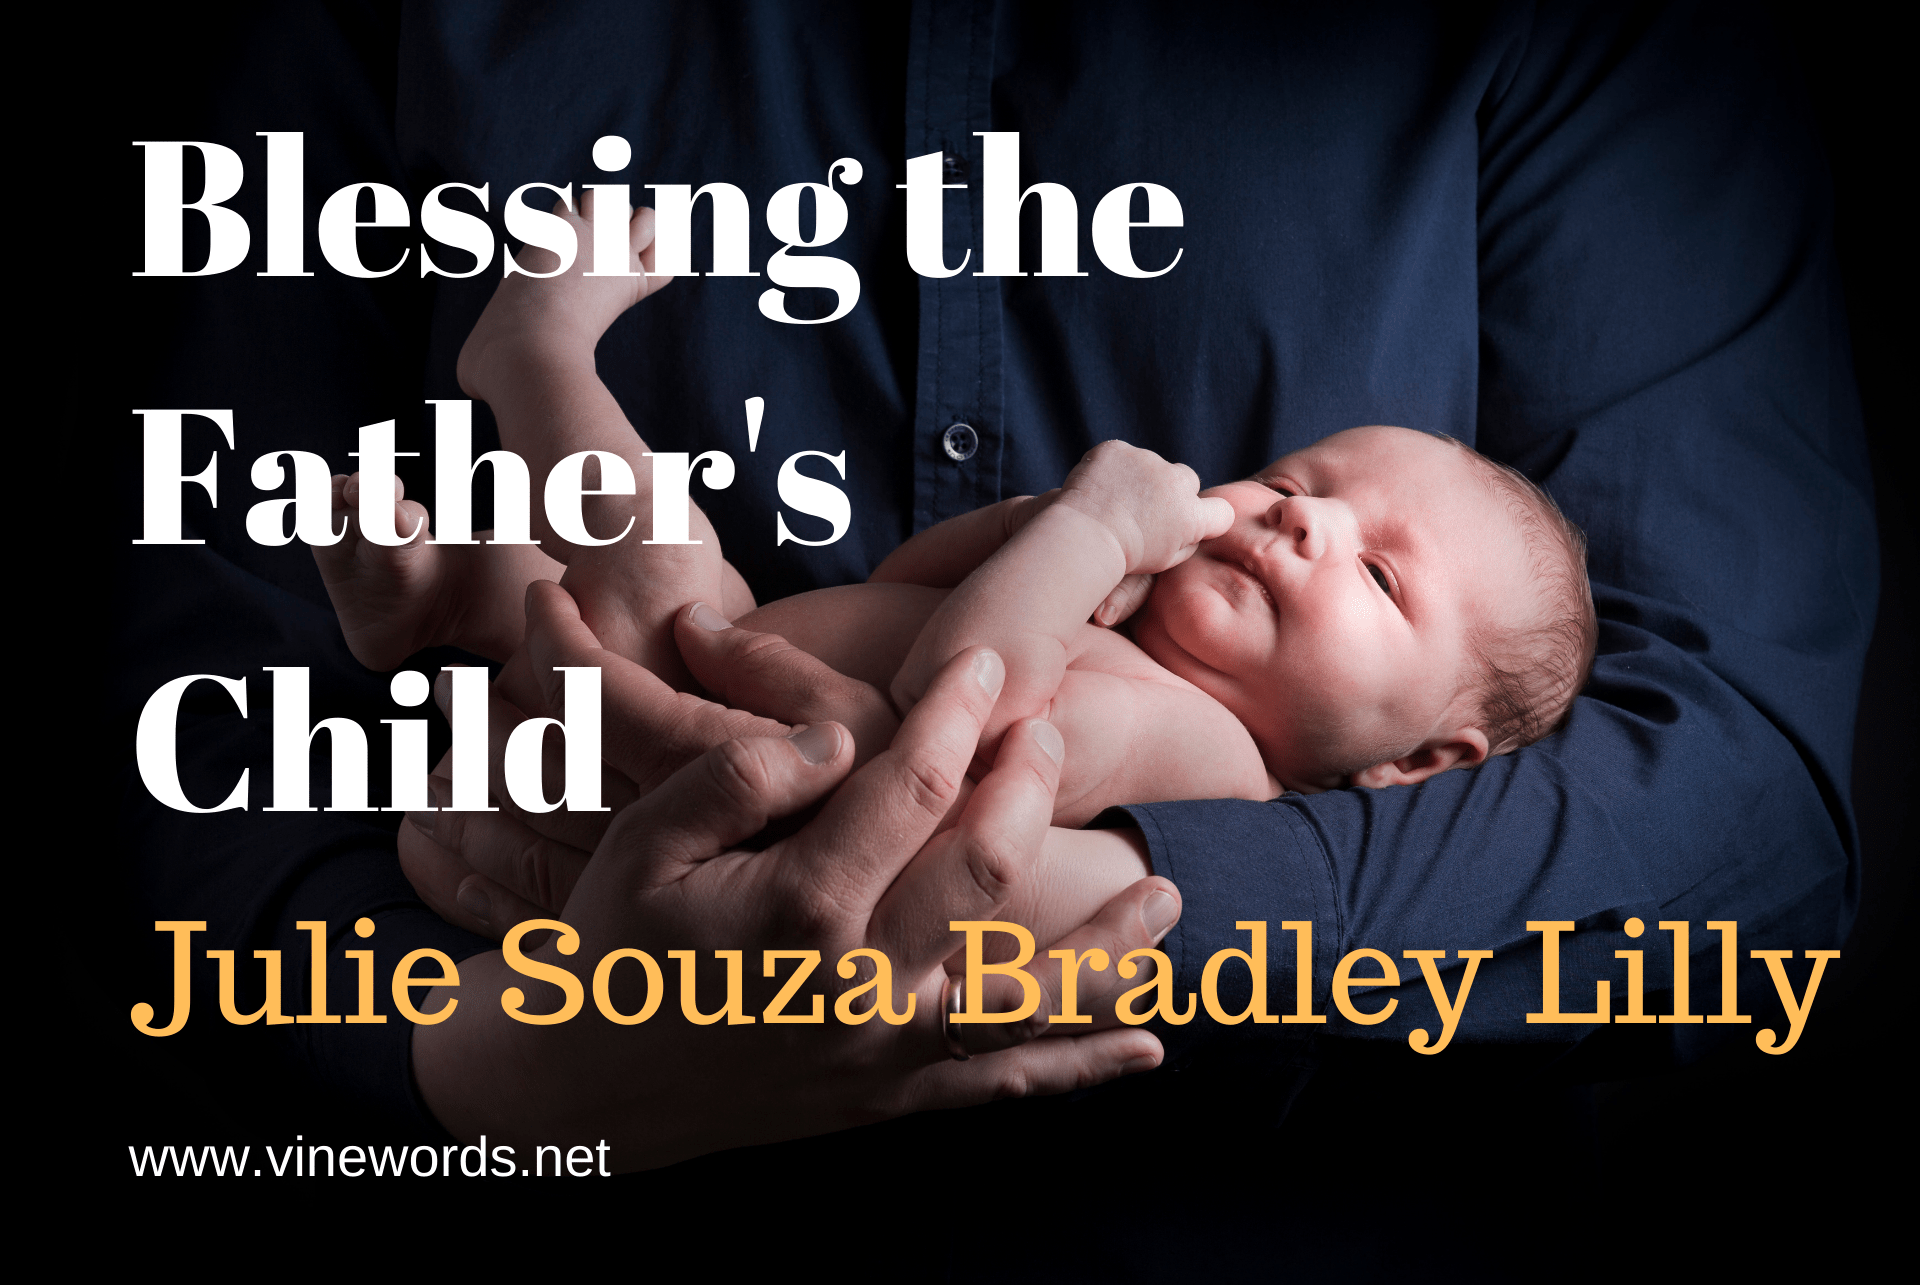 Julie Souza Bradley Lilly: Blessing the Father's Child